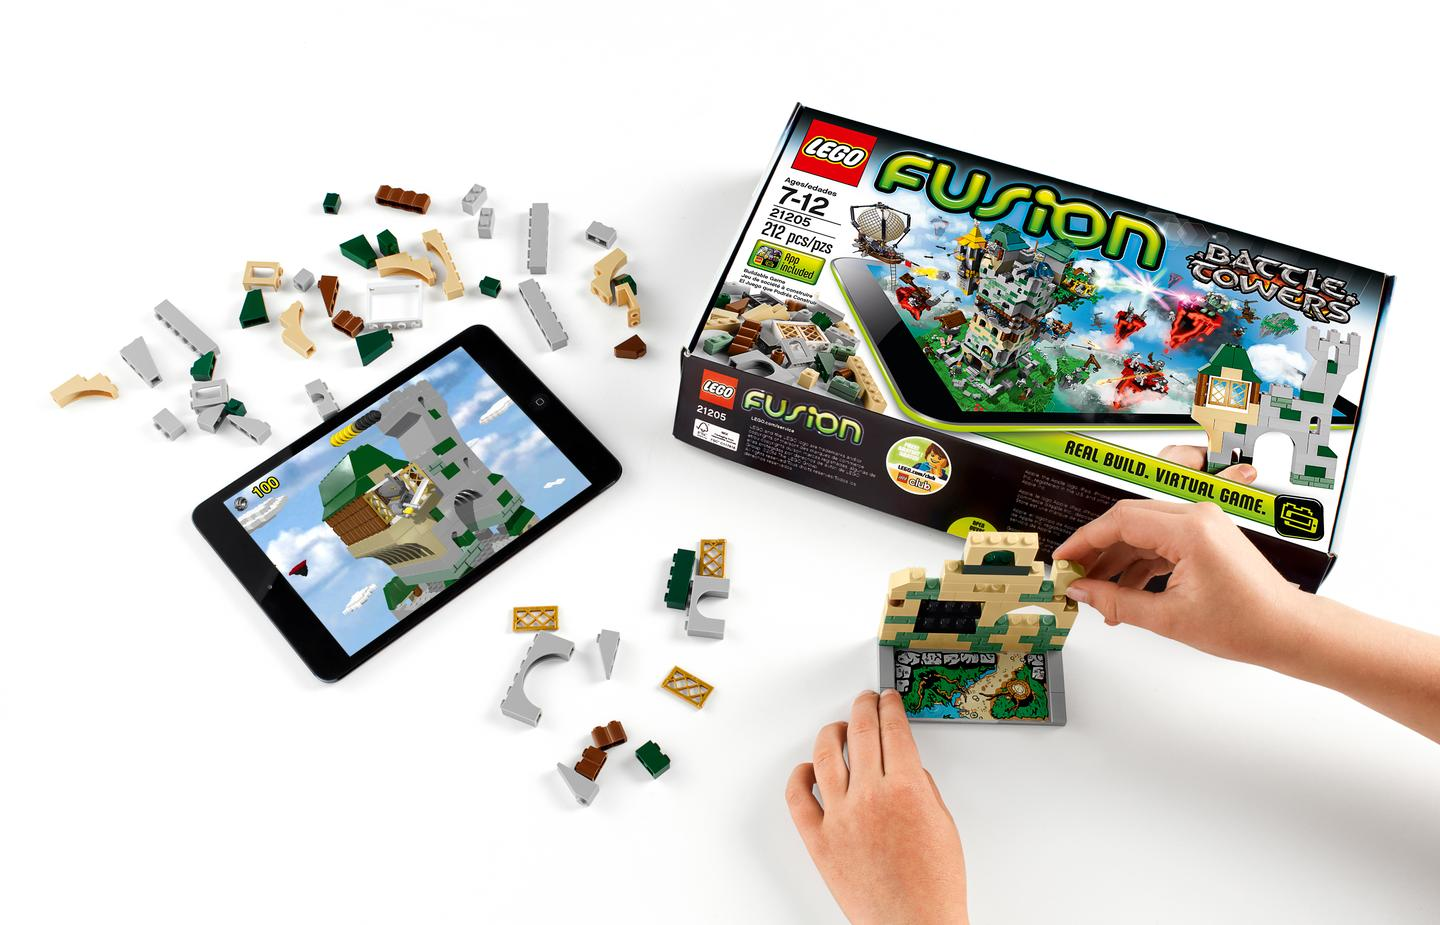 Lego Fusion Battle Towers requires players to build a tower and then defend it against virtual attack in a bid to rule a kingdom